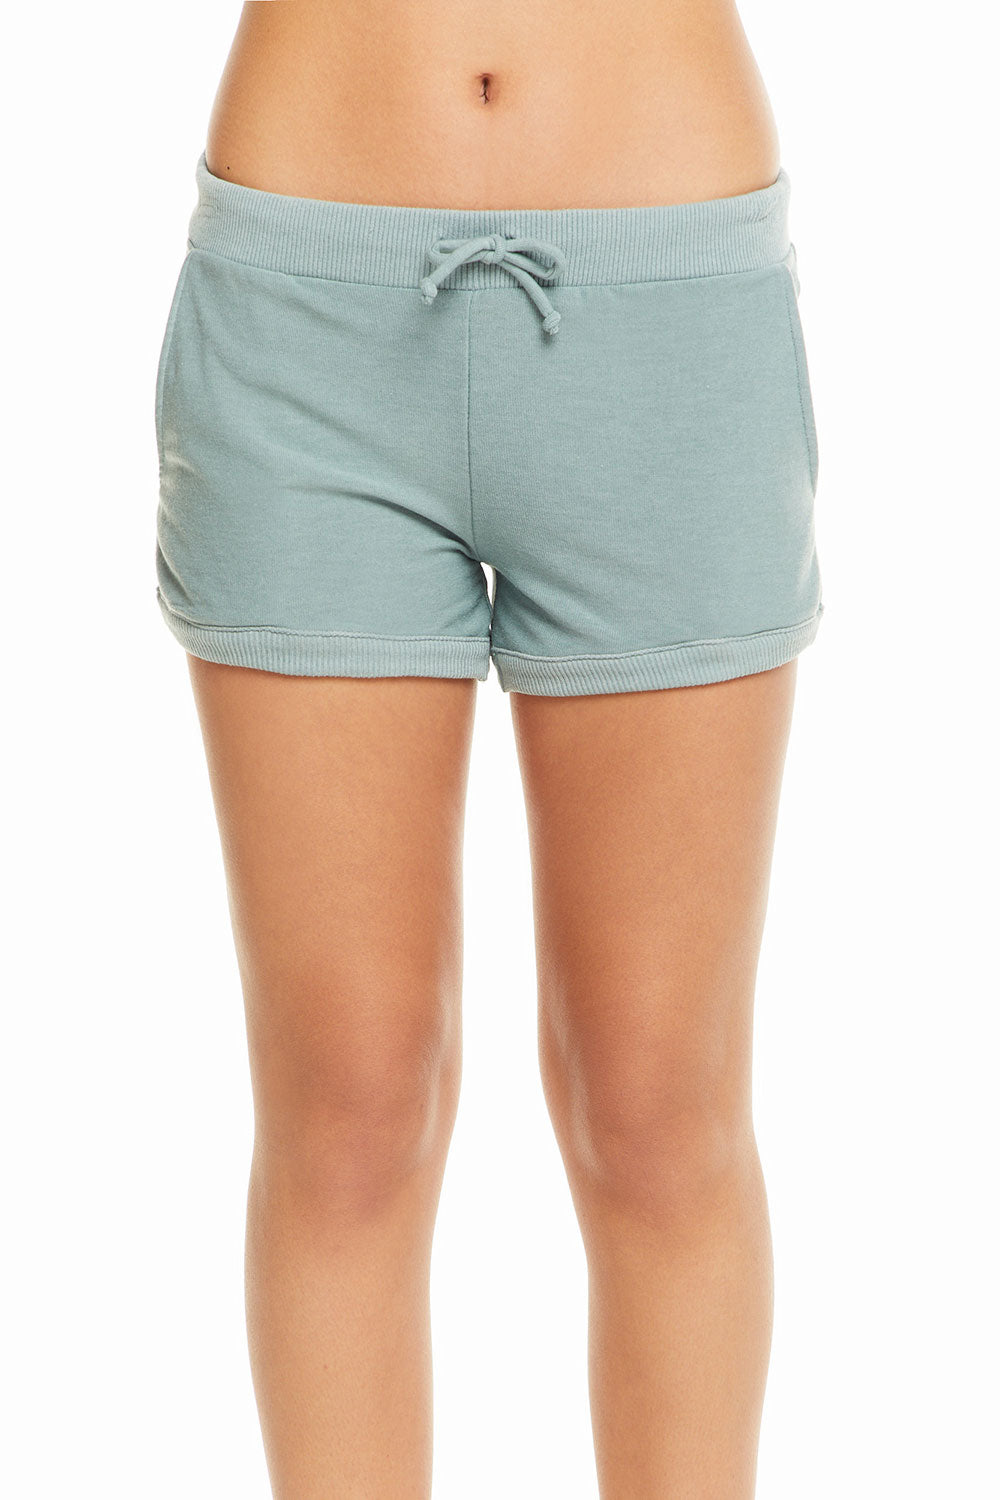 Cozy Knit Drawstring Lounge Short WOMENS chaserbrand4.myshopify.com